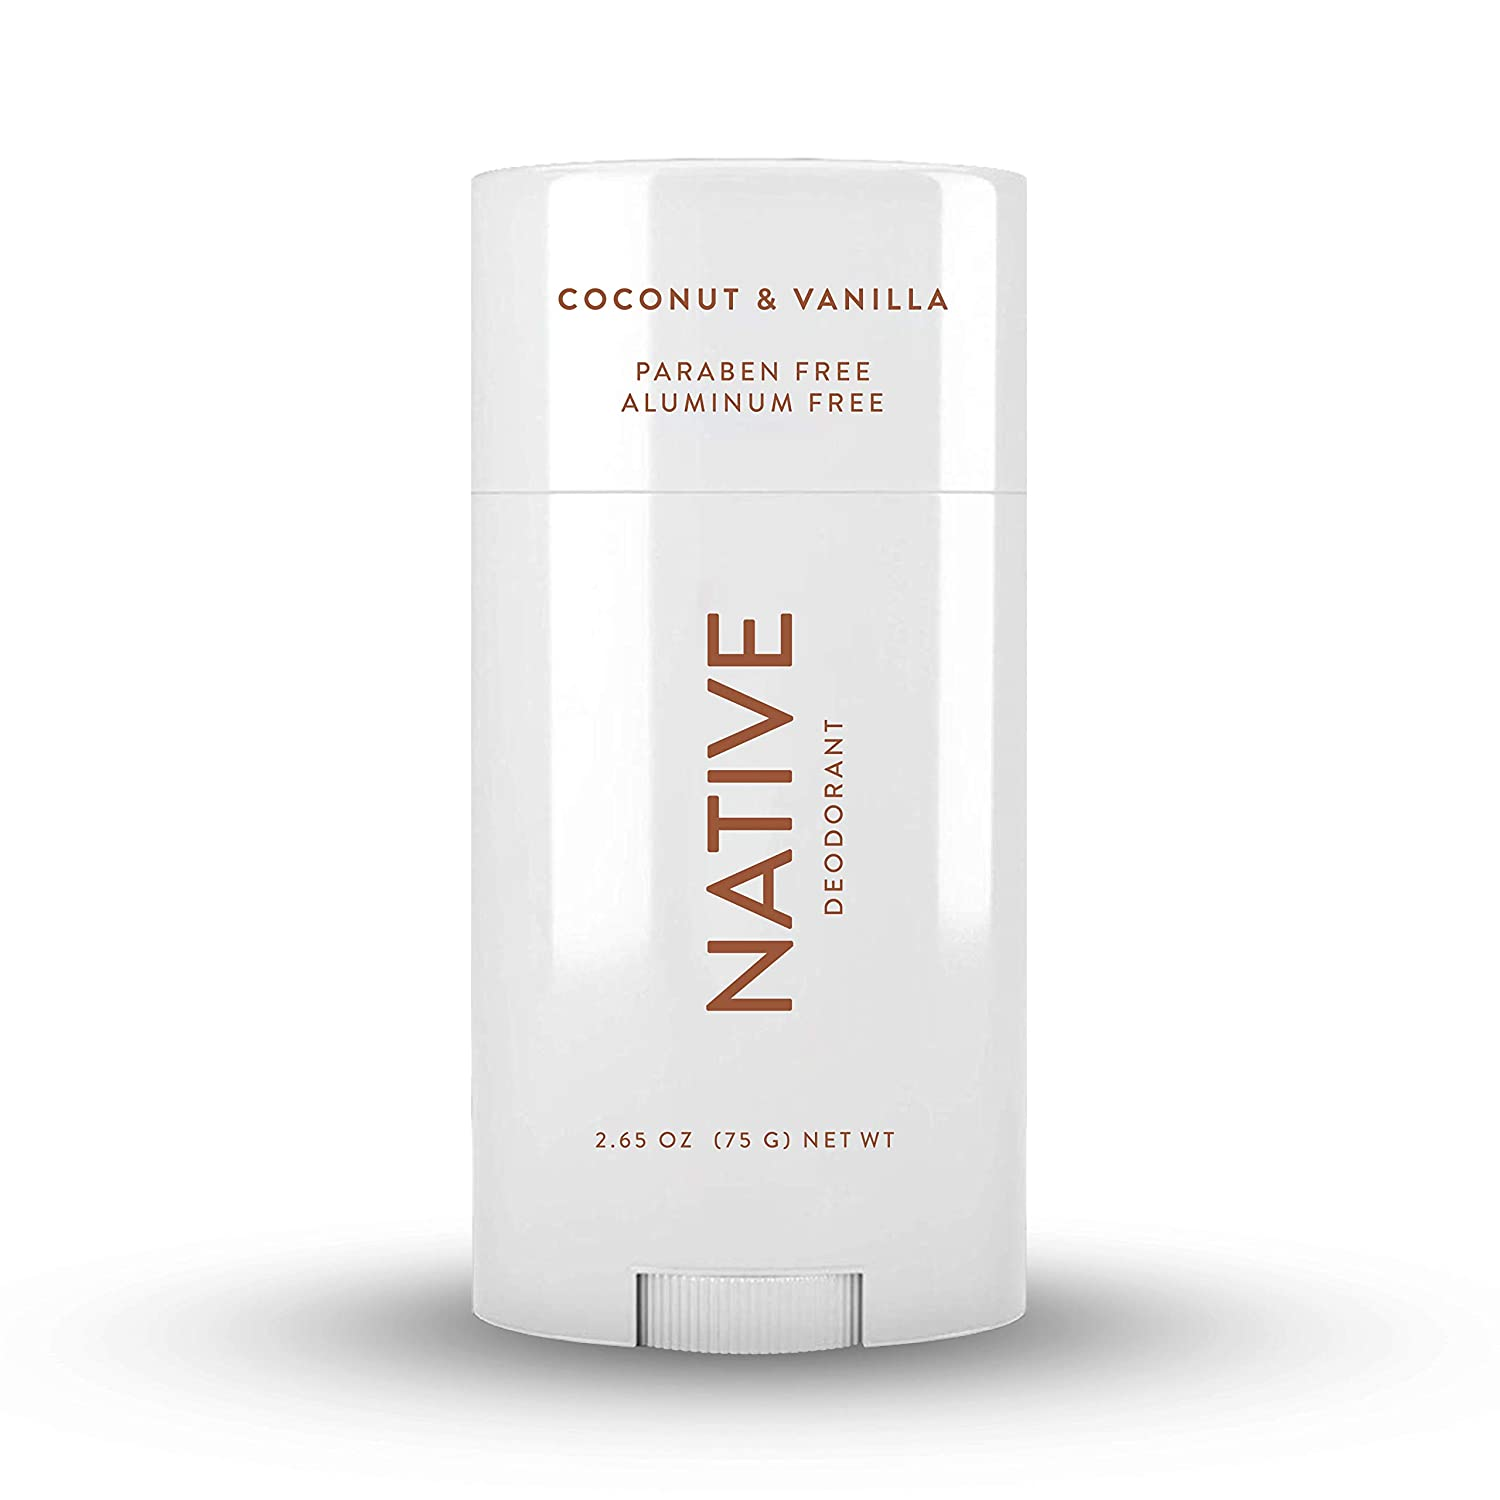 Native Deodorant - Natural Deodorant for Women and Men - Vegan, Gluten Free, Cruelty Free - Aluminum Free, Free of Parabens & Sulfates - Coconut & Vanilla : Beauty